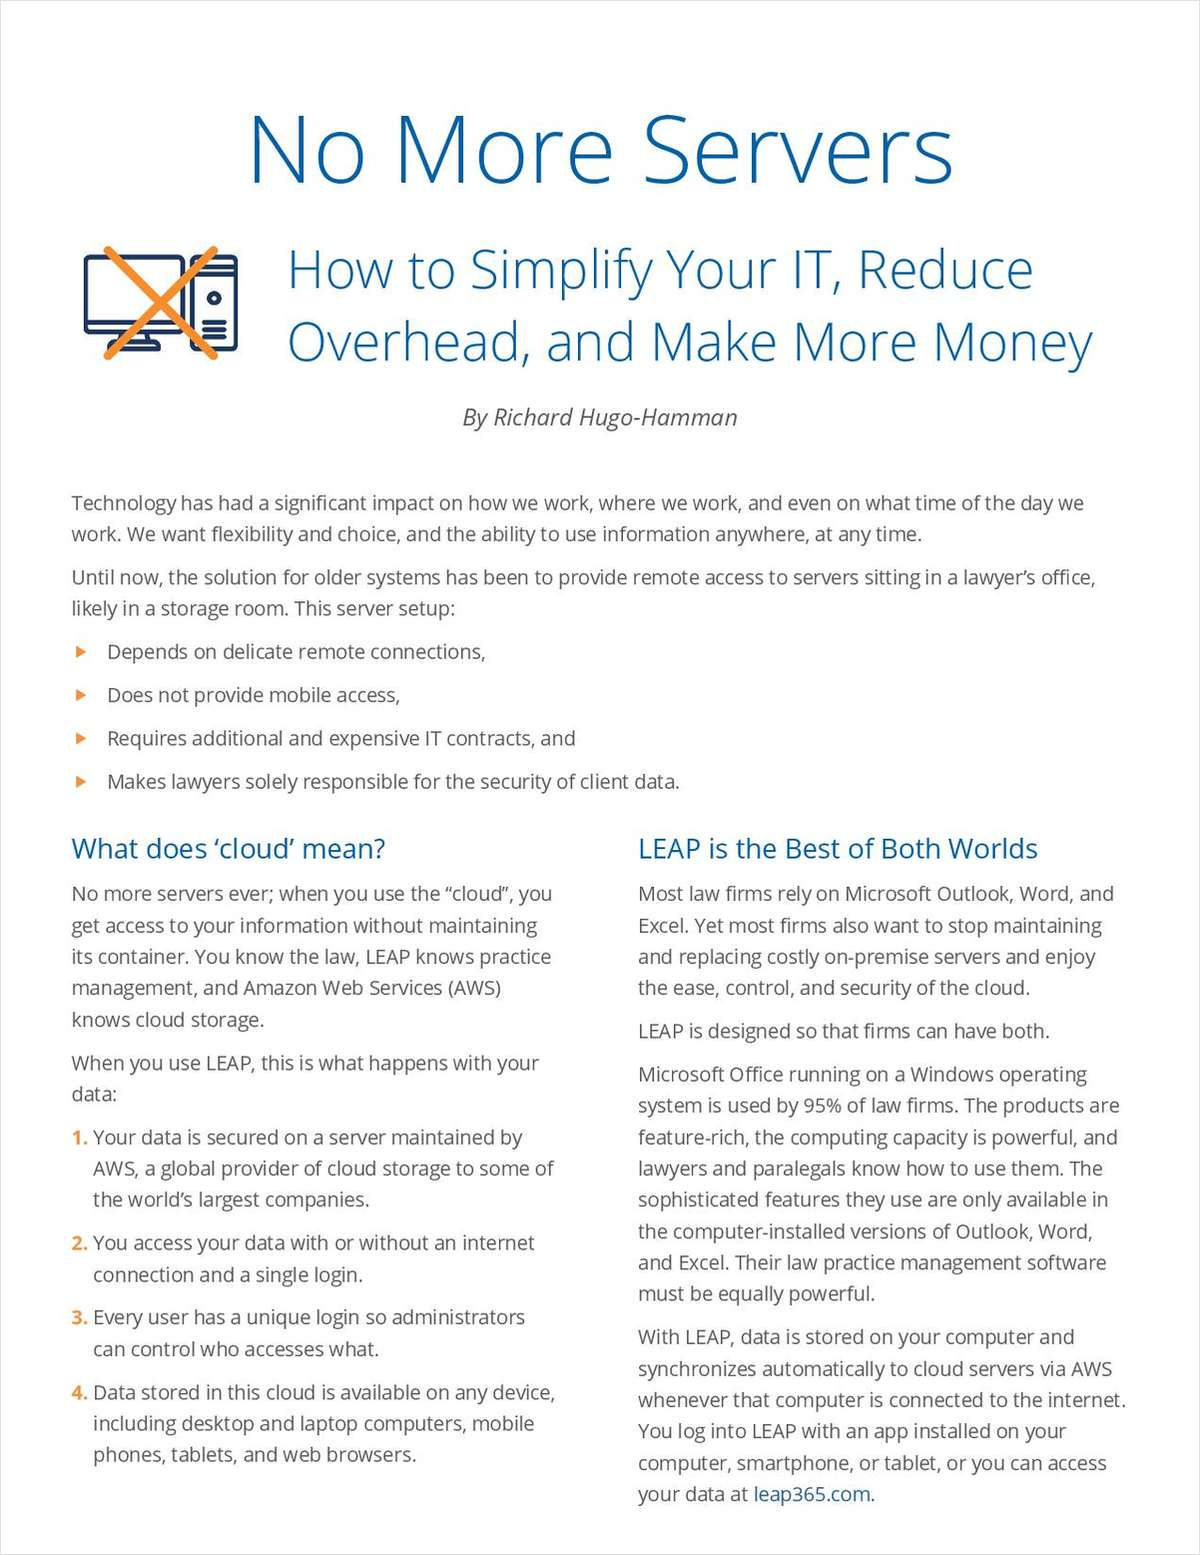 No More Servers - How to Simplify Your IT, Reduce Overhead, and Make More Money